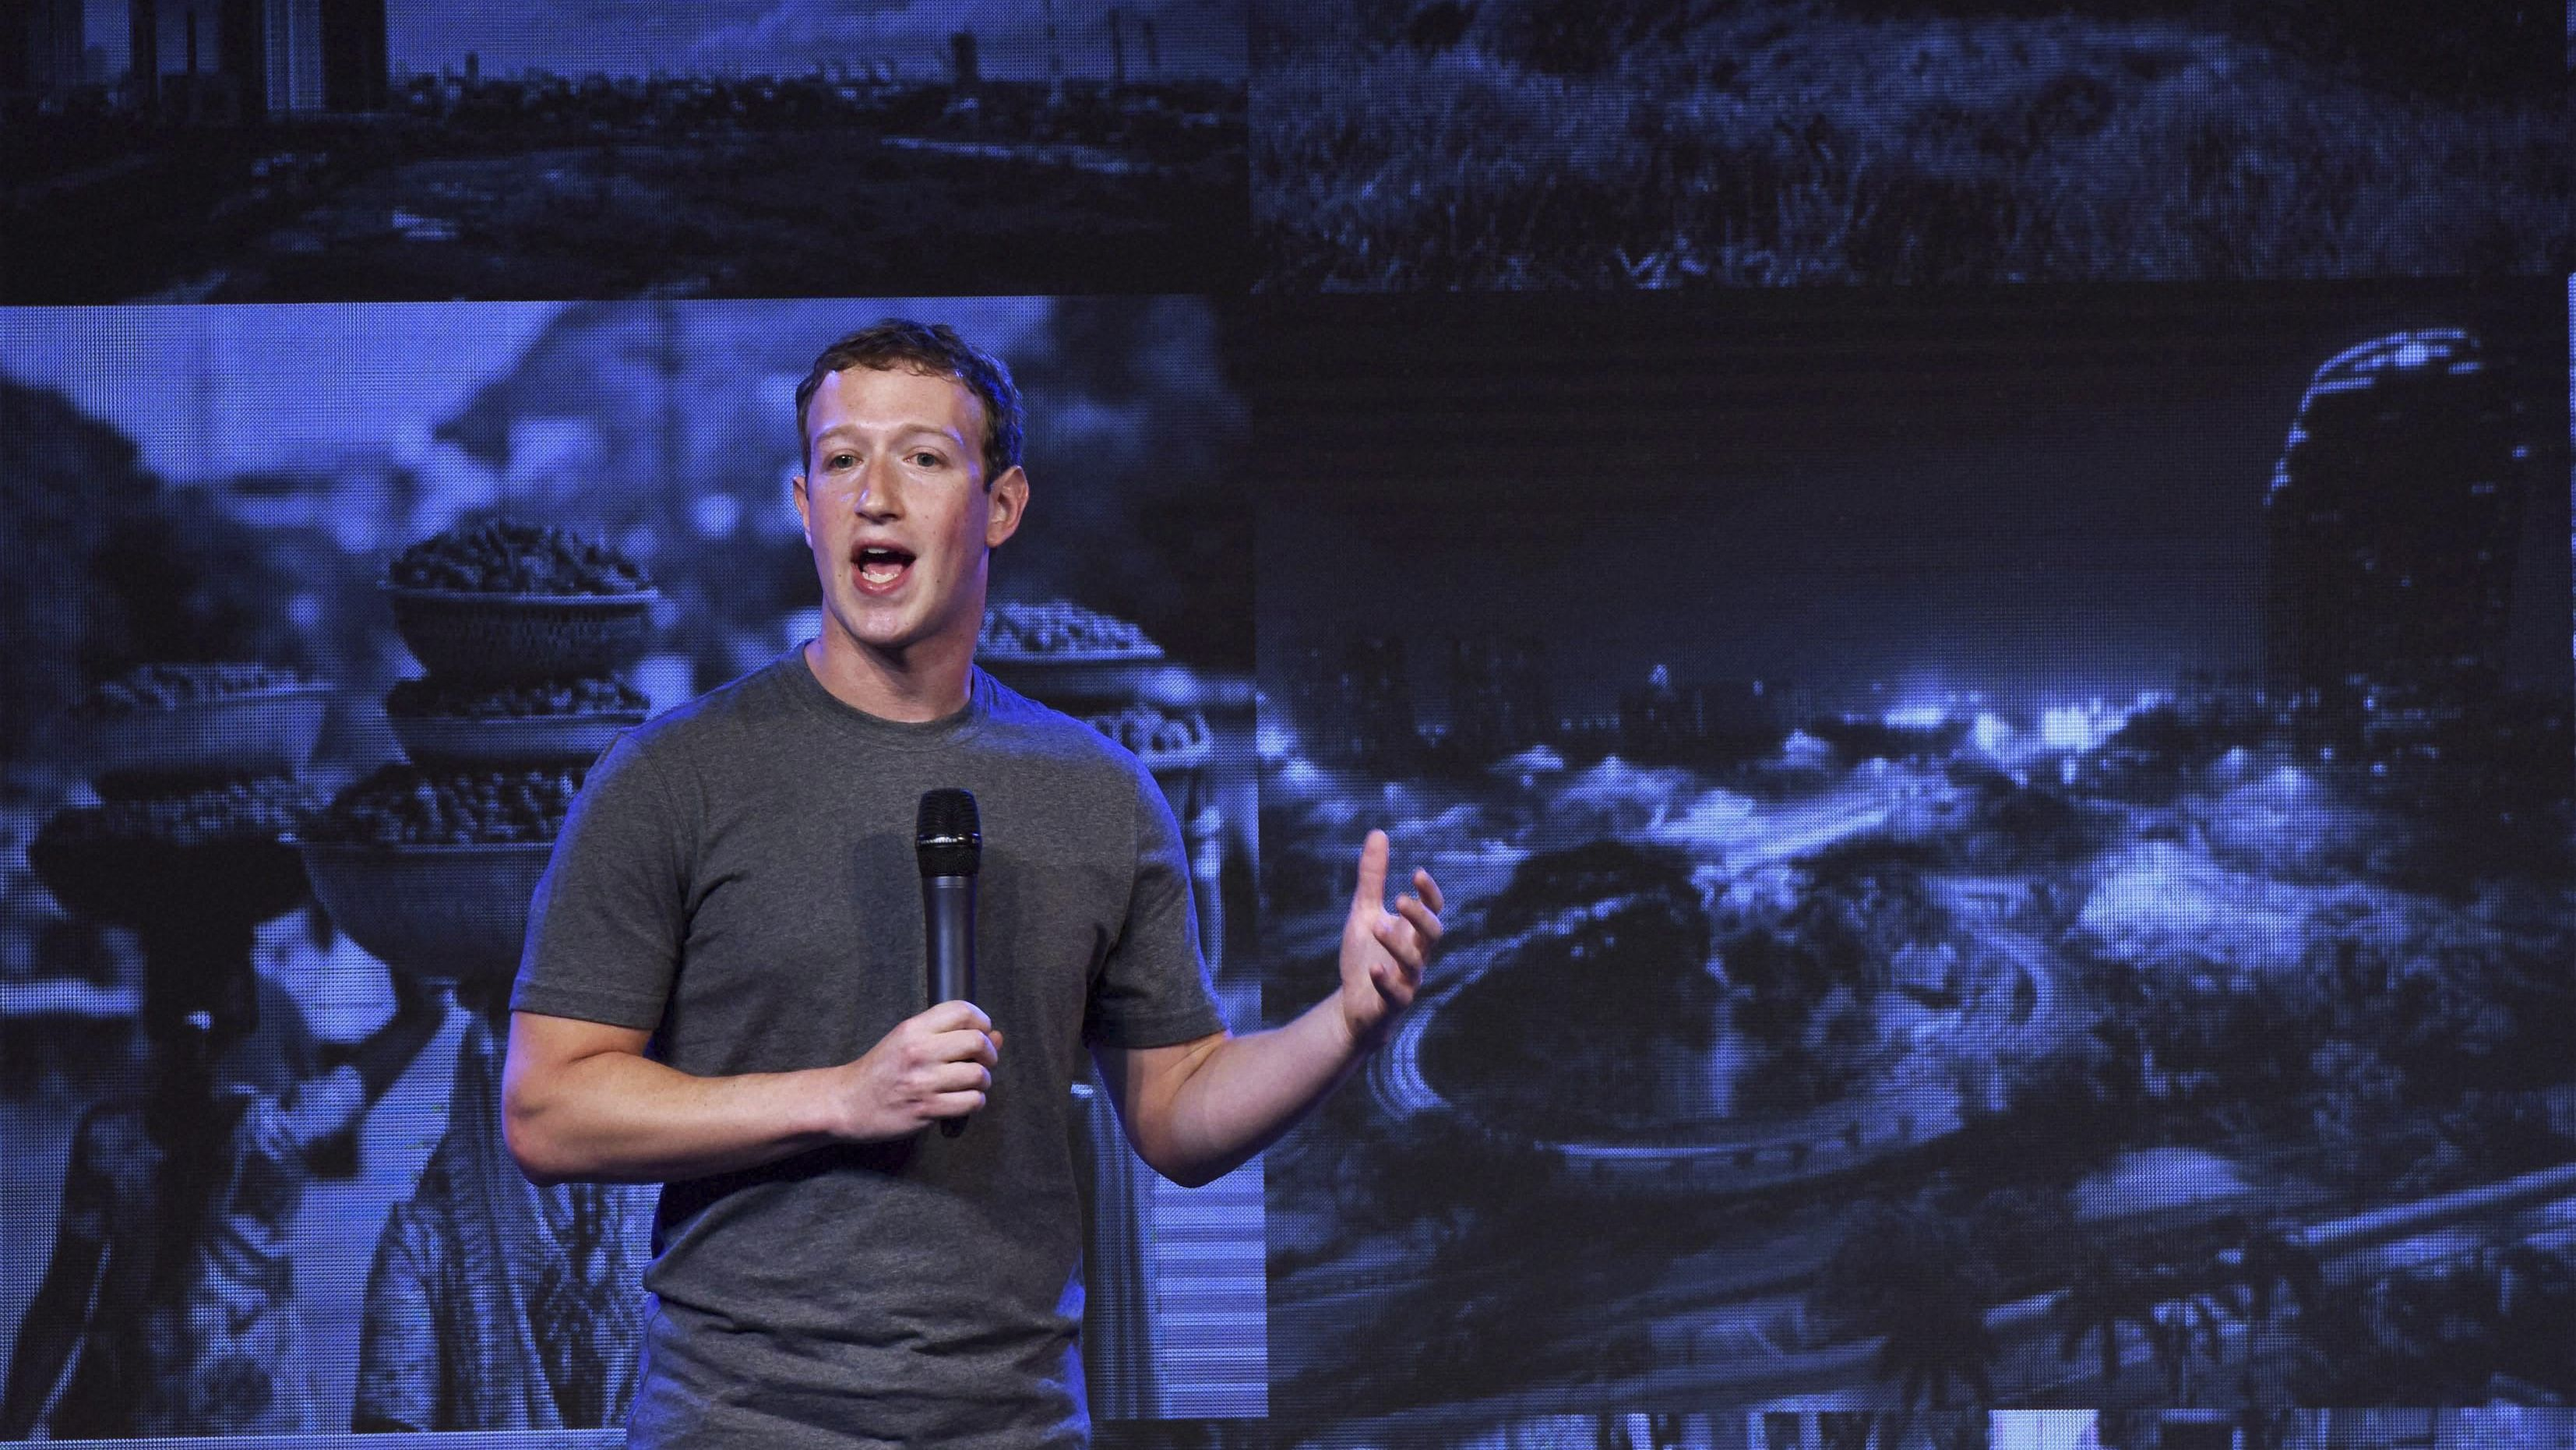 Facebook CEO Mark Zuckerberg speaks at the internet.org summit in New Delhi, India, Thursday, Oct.9, 2014. (AP Photo/Press Trust of India) INDIA OUT